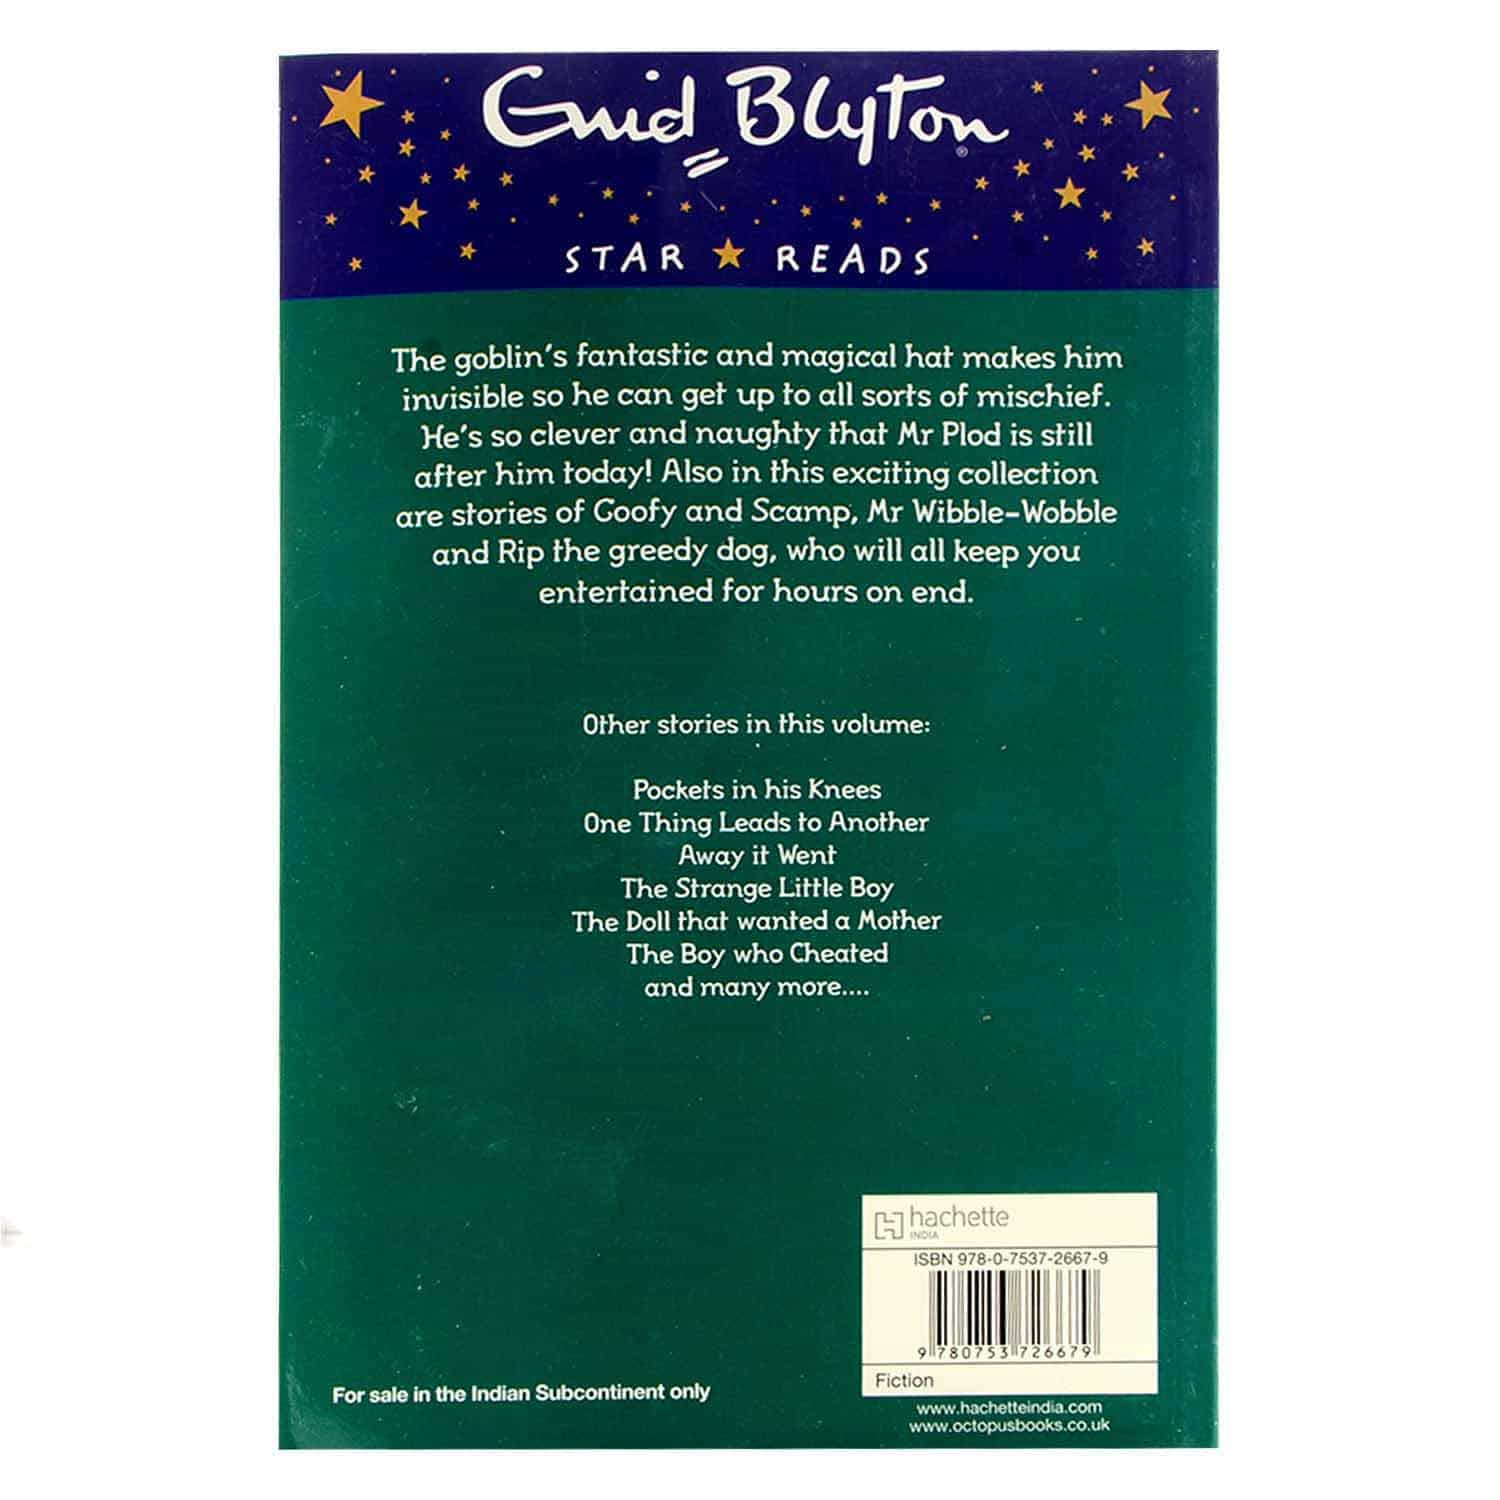 Enid Blyton - The Goblin Hat and Other Stories